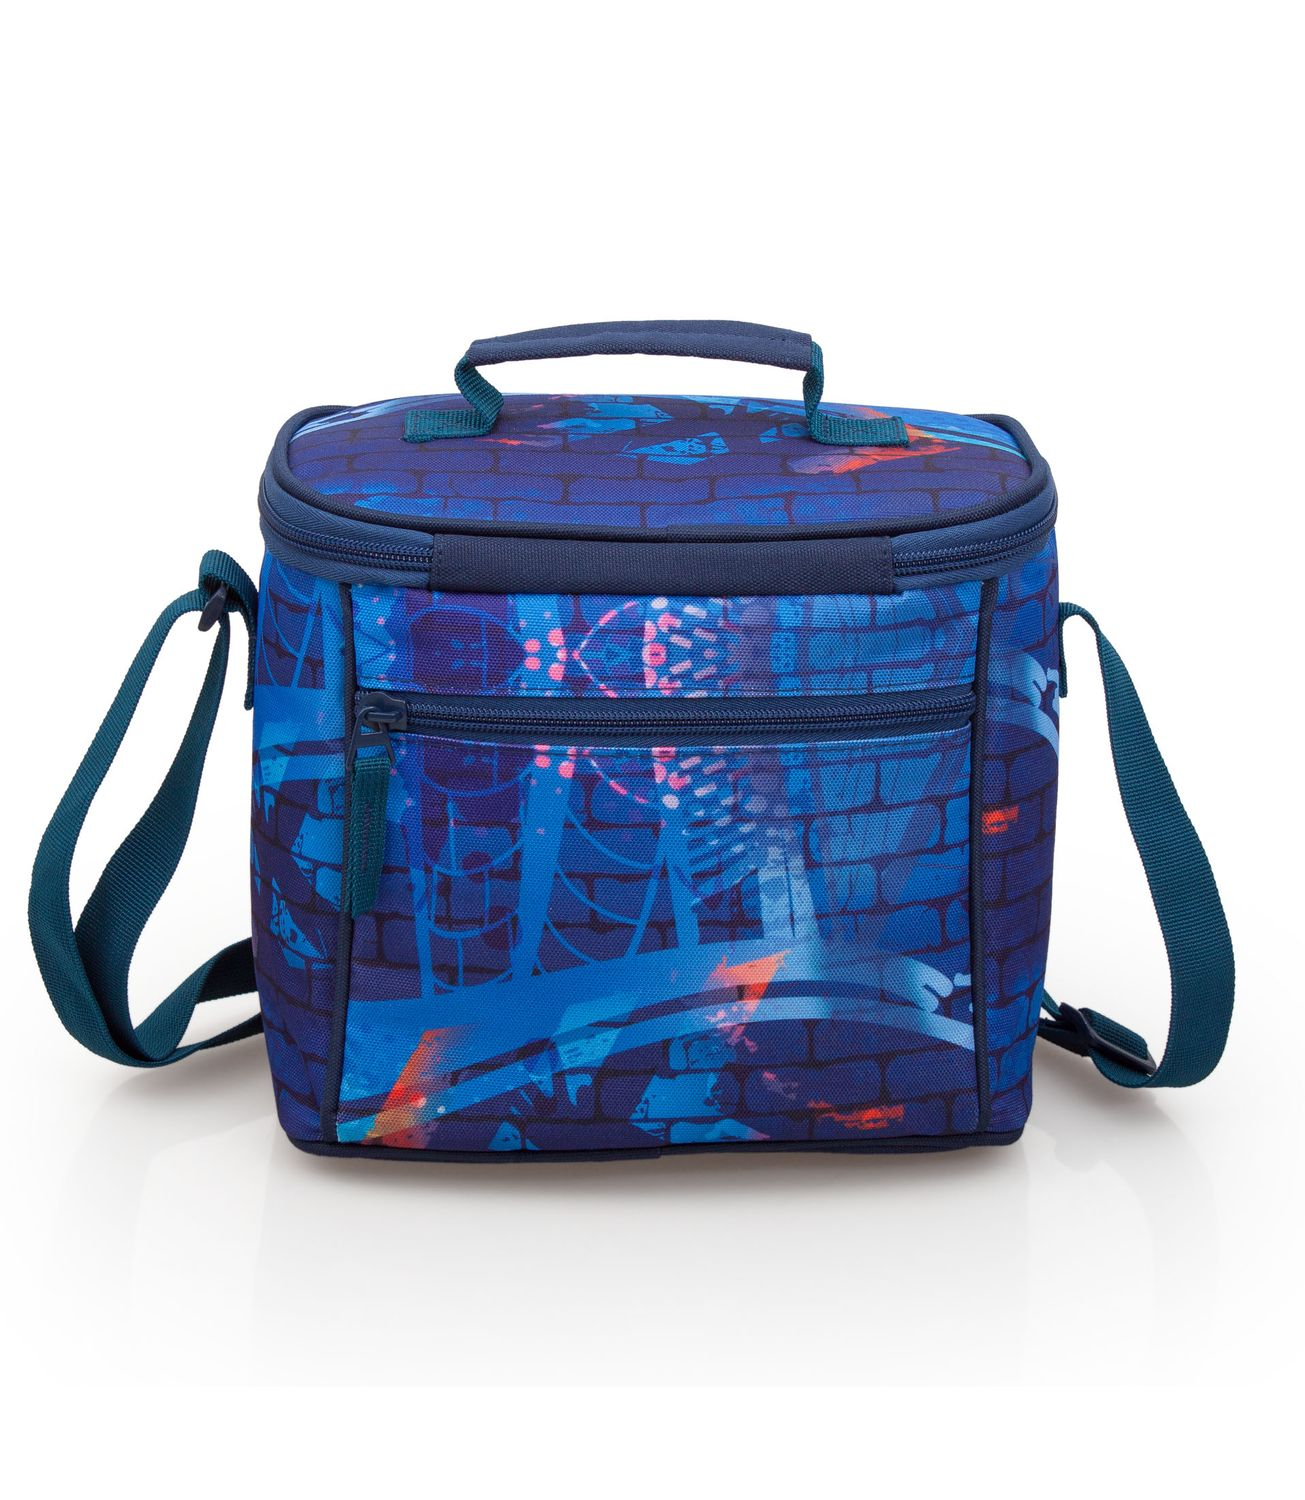 Eastwick BLUE SKATER Cooler Lunch Bag – image 2